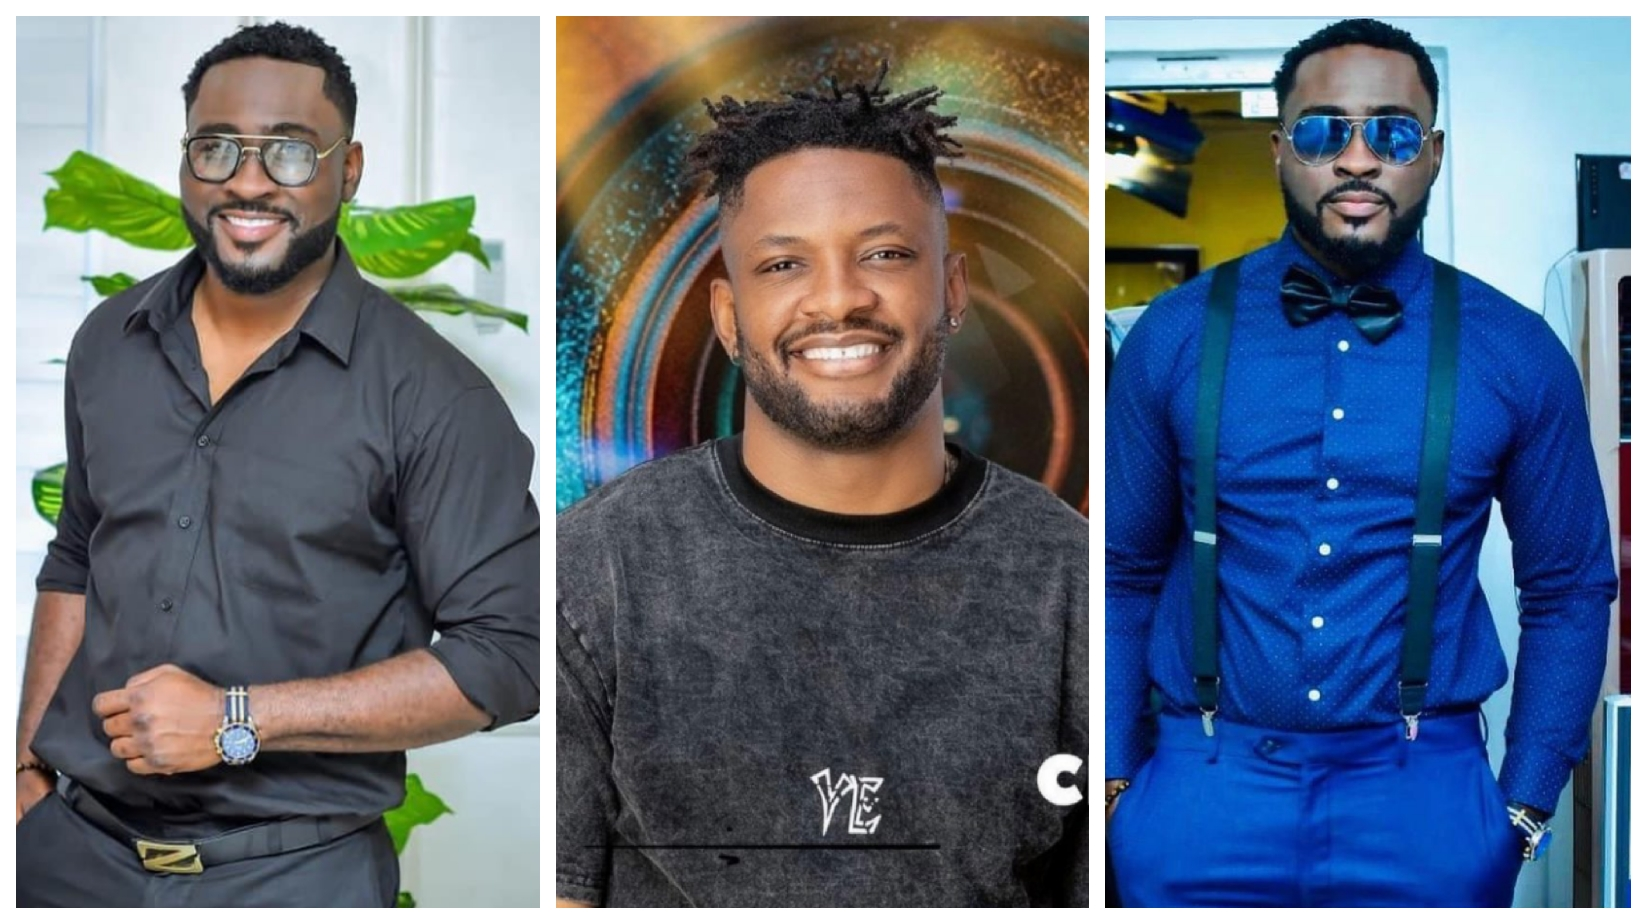 BBNaija: I dreamt that we had a white party and someone brought in a gun - Pere tells Cross